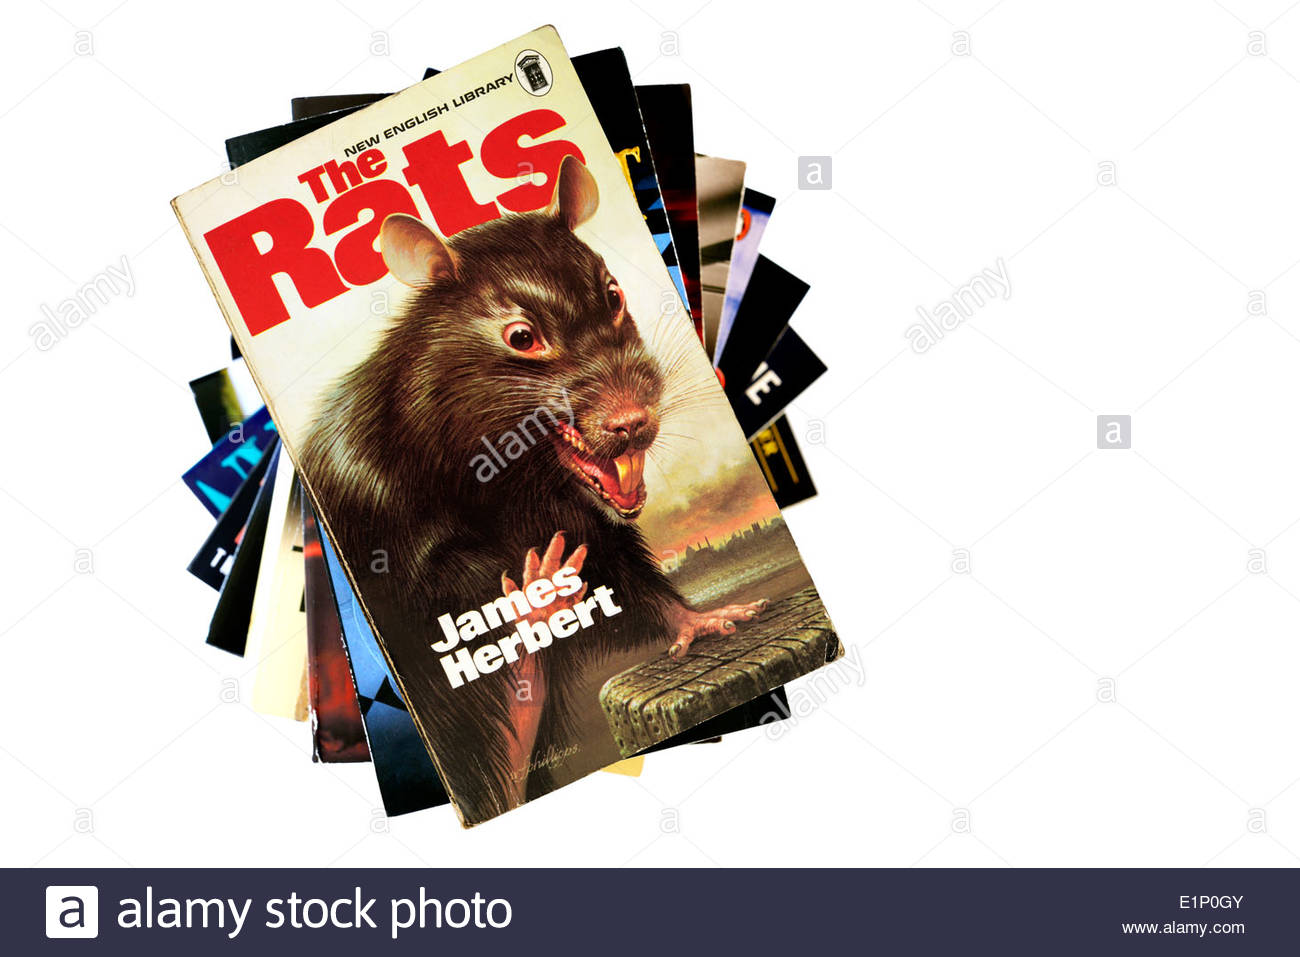 James Herbert horror novel The Rats, paperback title stacked used books, England - Stock Image